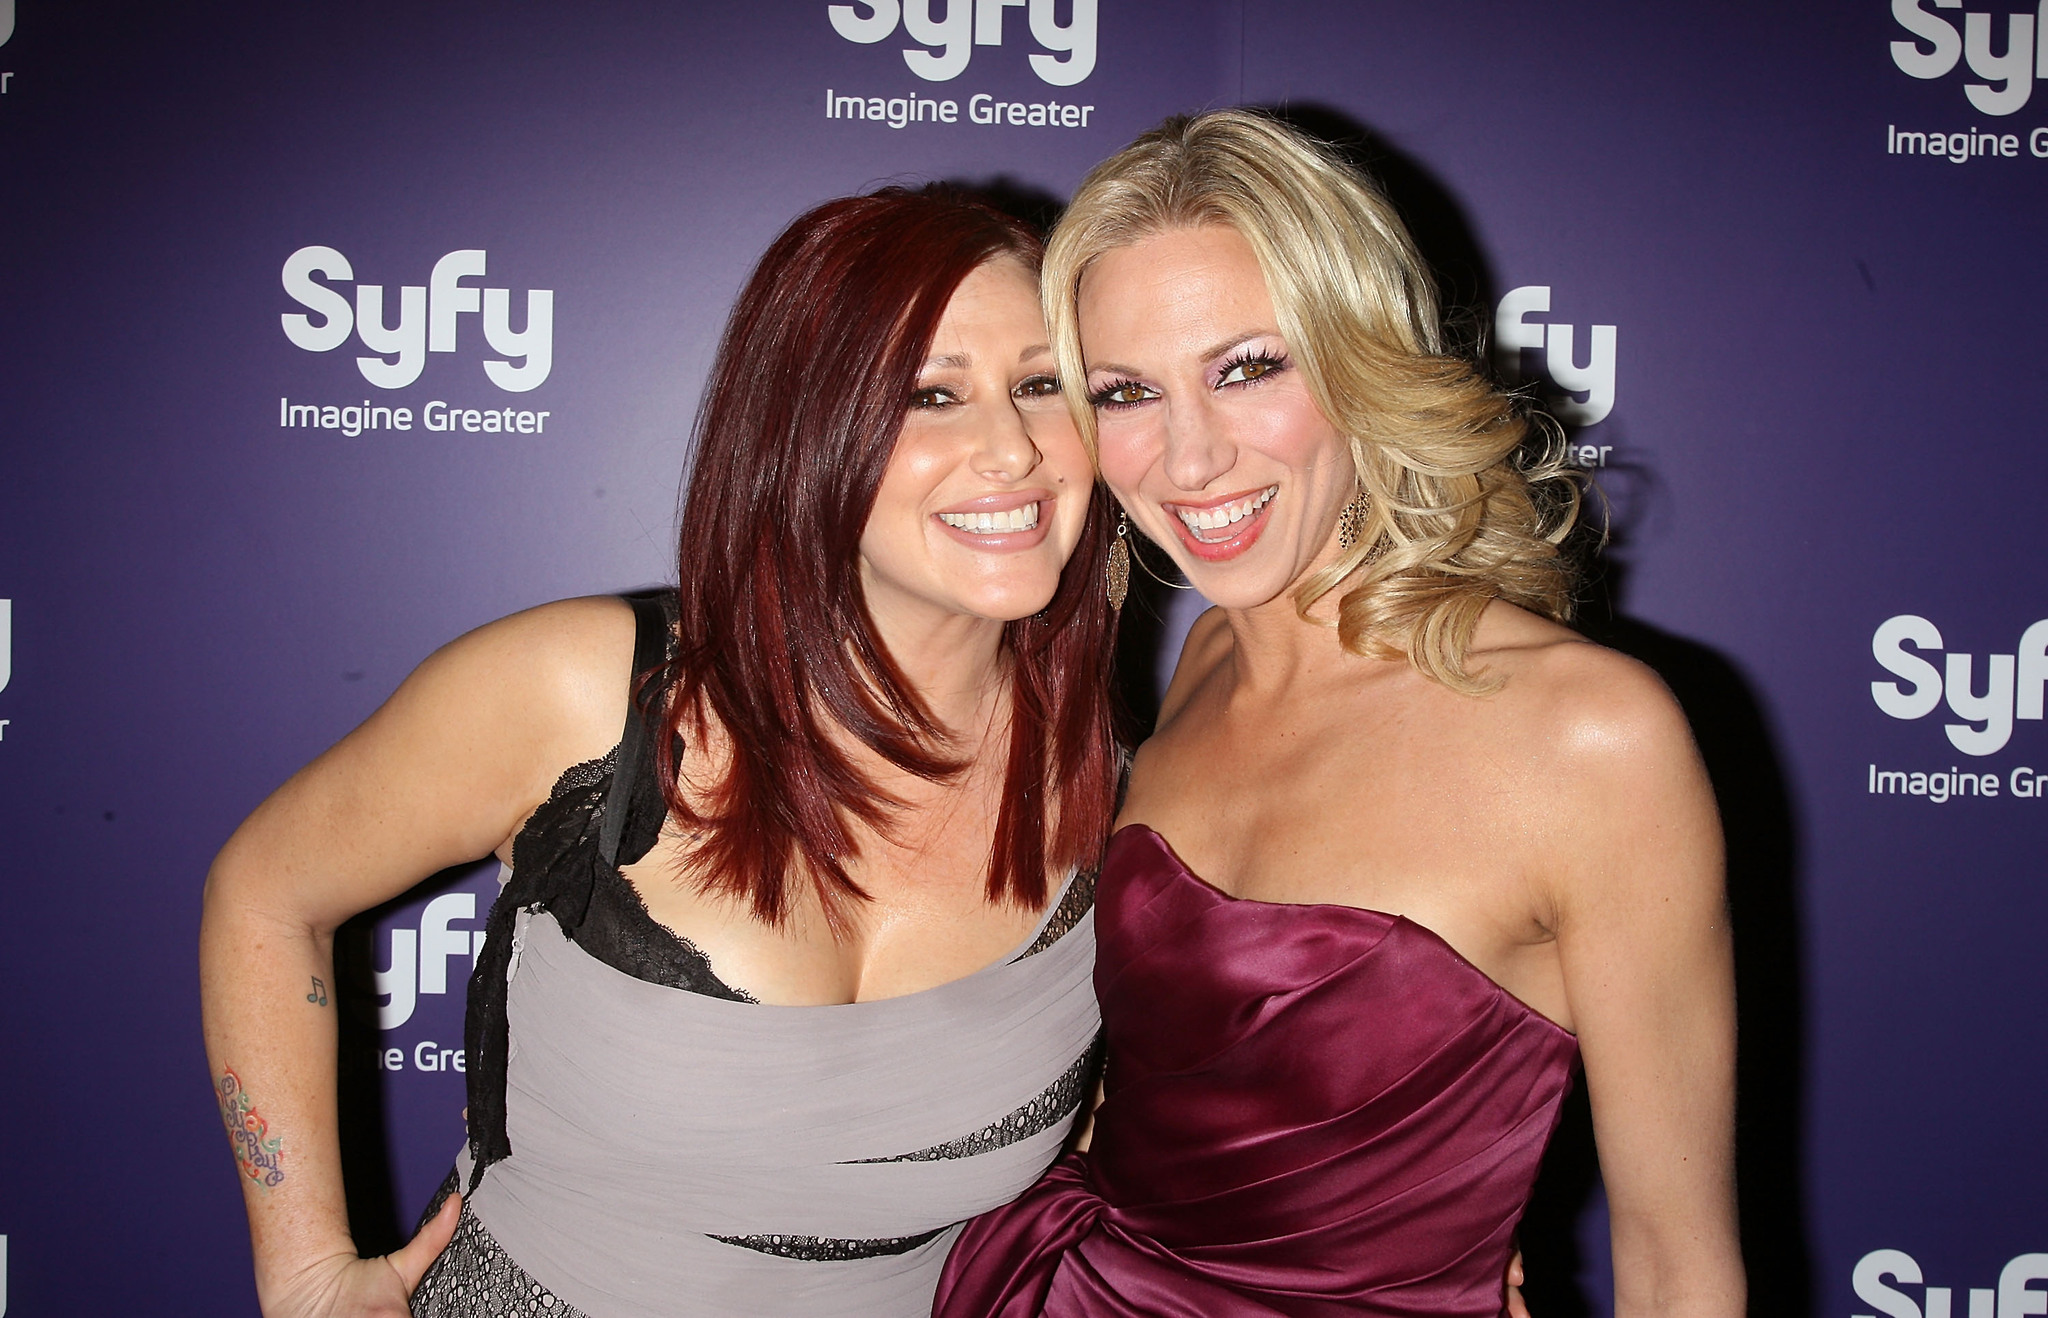 Debbie Gibson and Tiffany at an event for Mega Python vs. Gatoroid (2011)